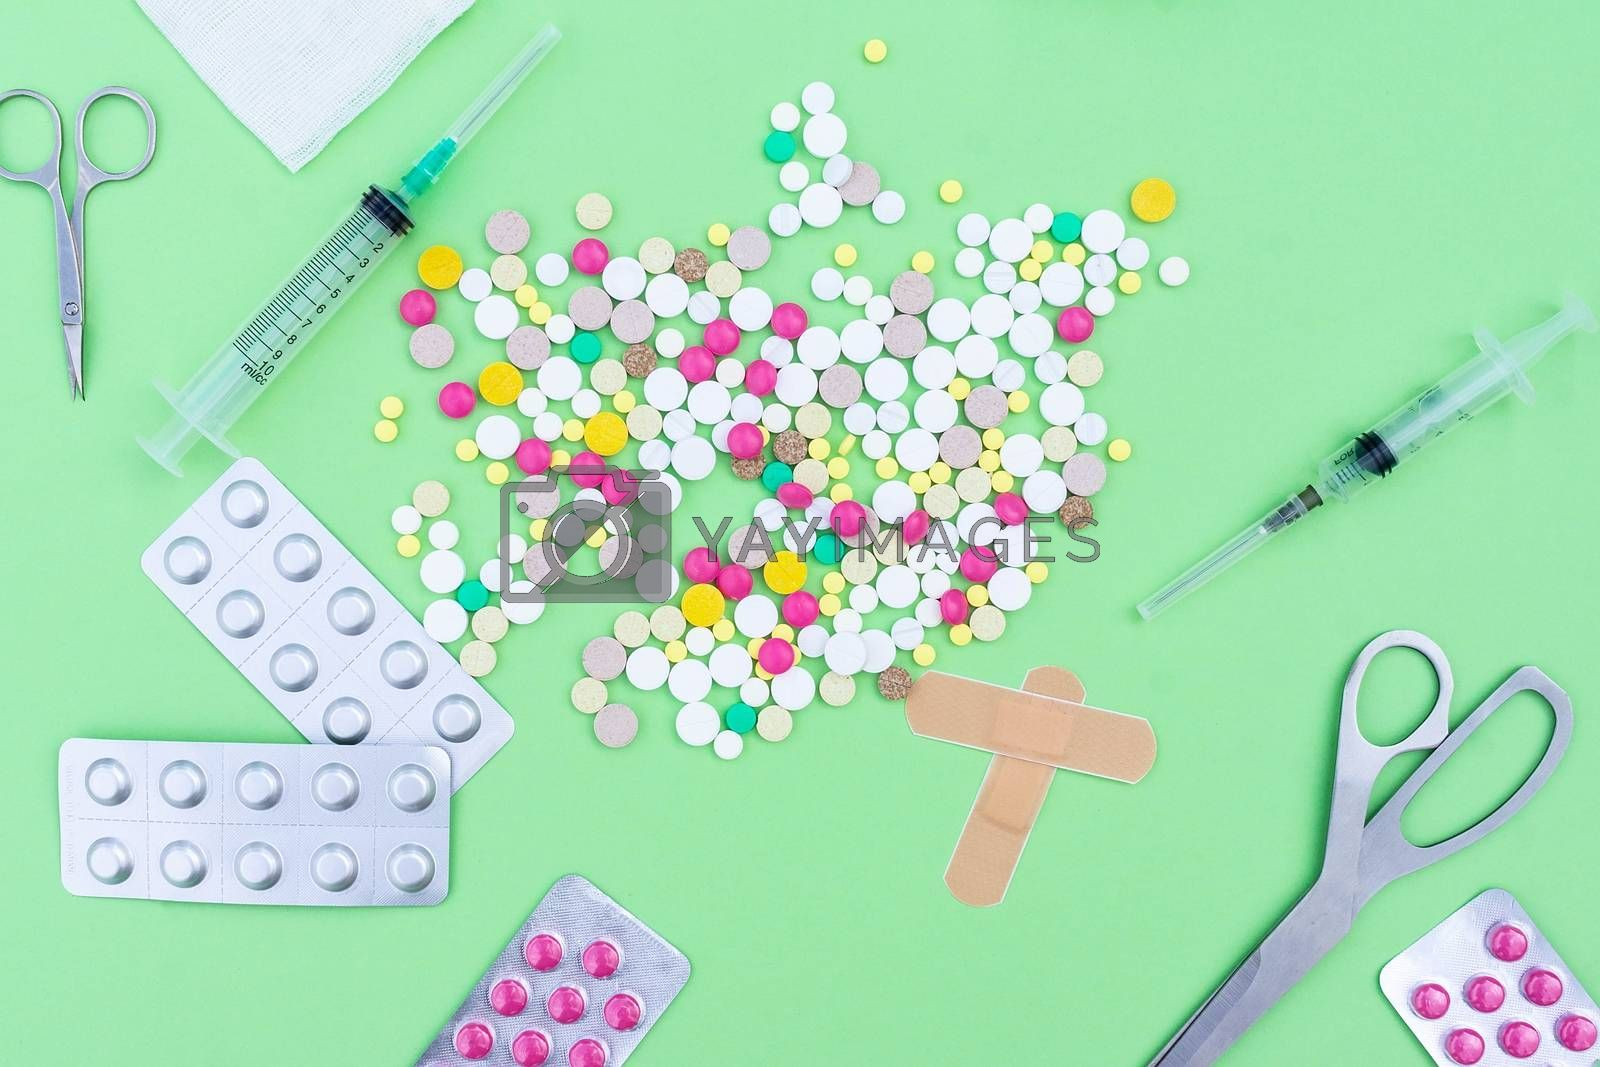 Подпись:Assorted pharmaceutical medicine pills, tablets and capsules over green background